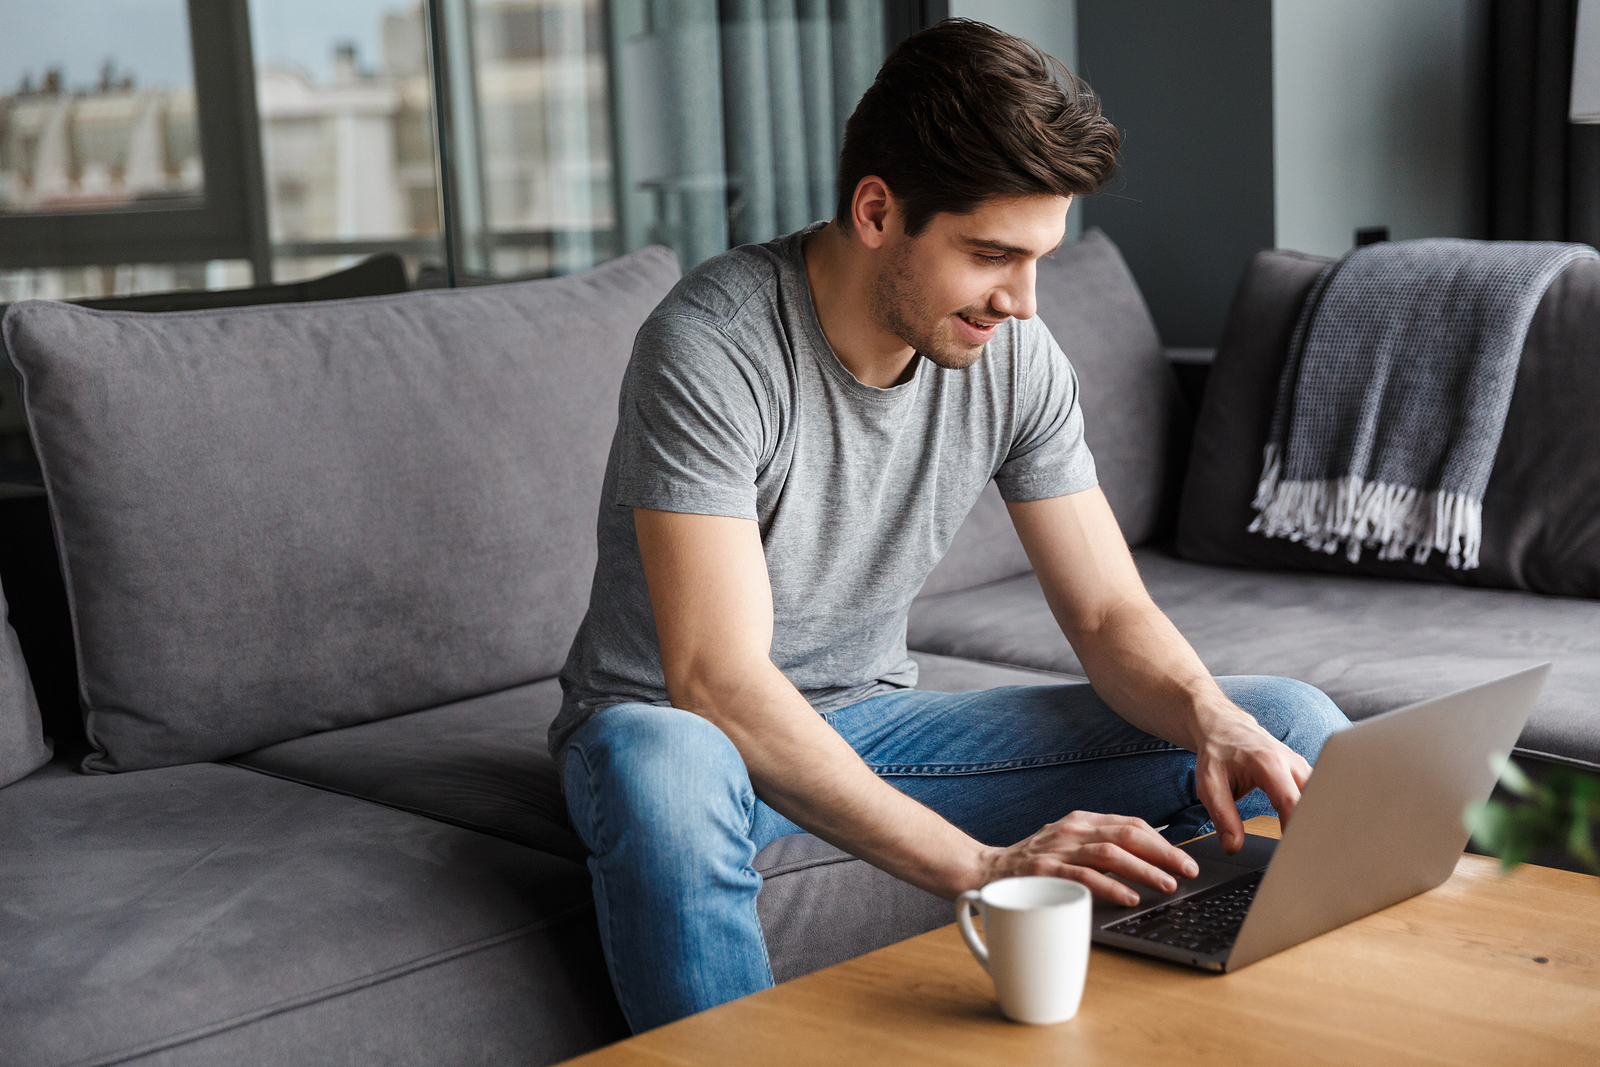 Photo of a white young man with a gray t shirt and jeans, sitting on a couch working on his laptop with a smile on his face.